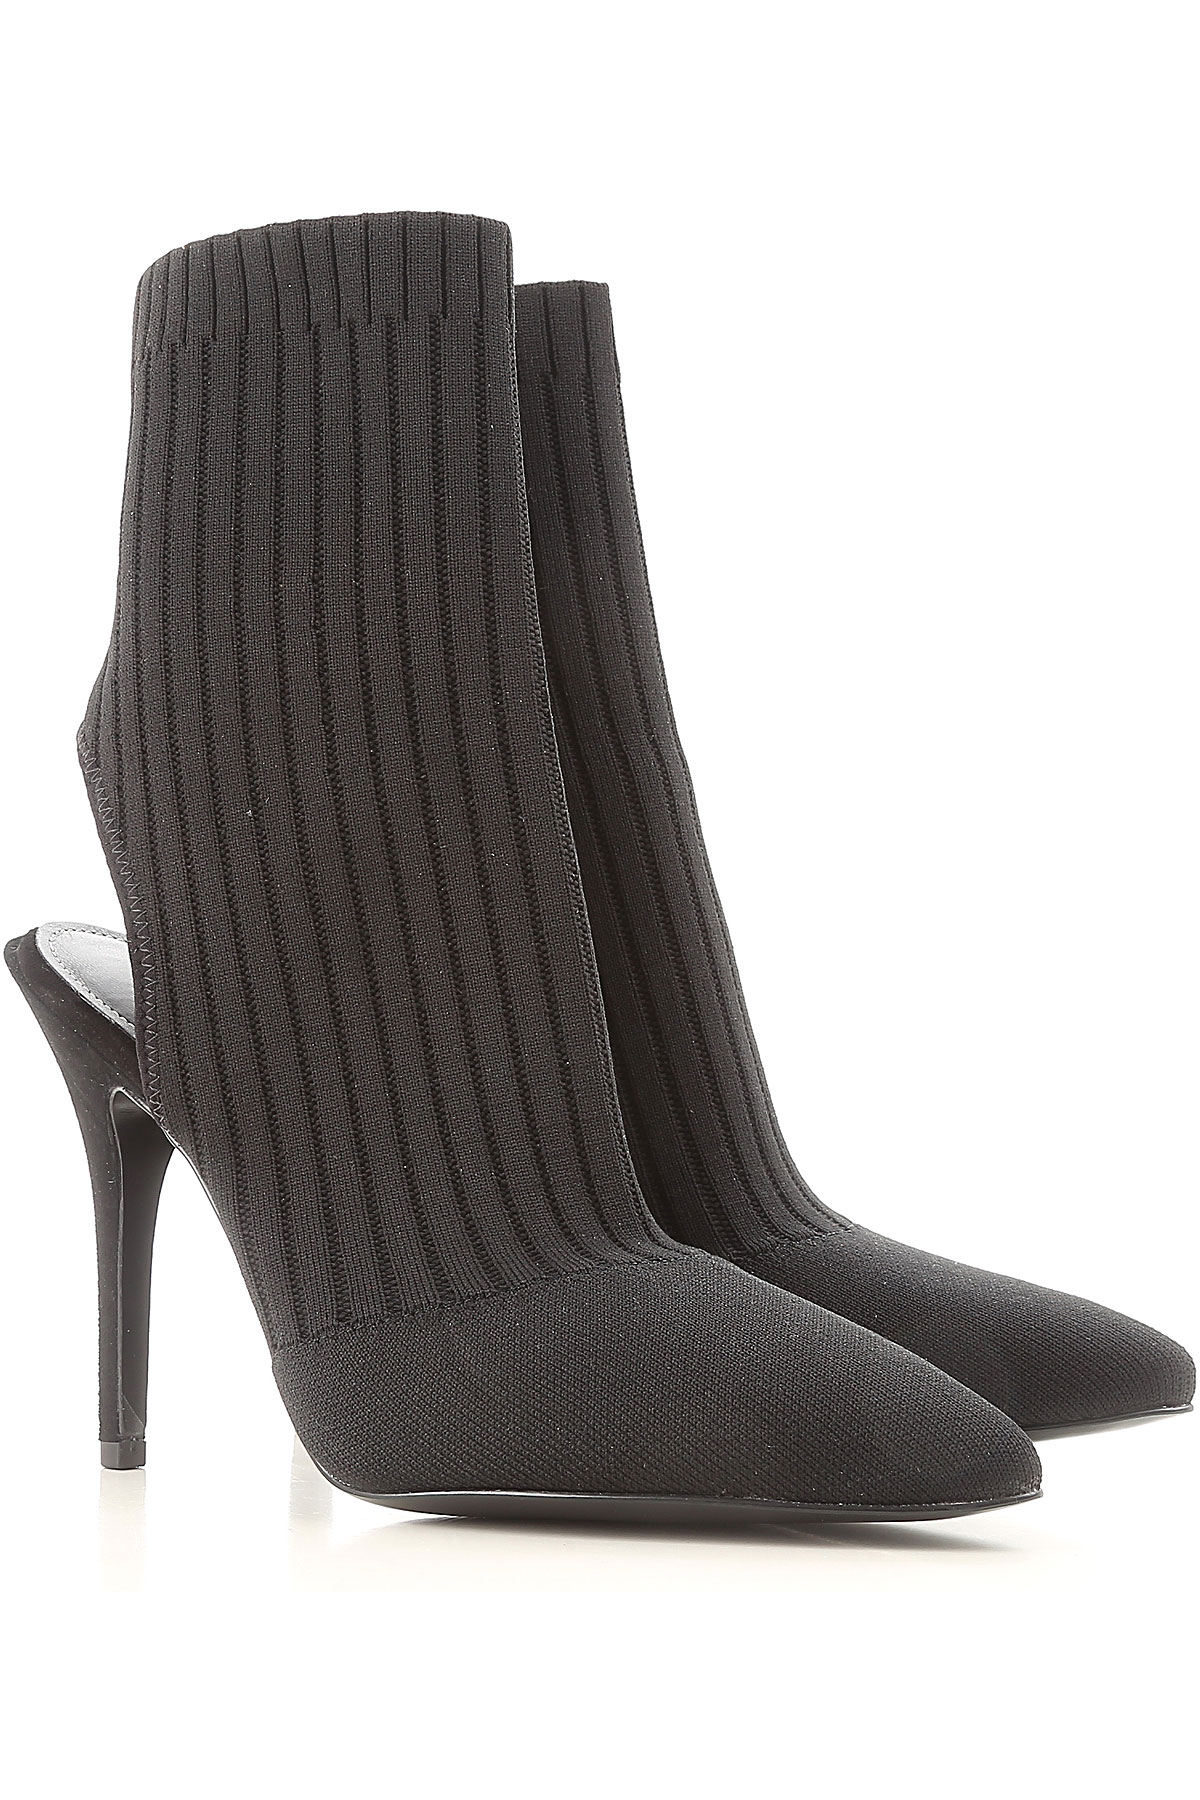 Kendall Kylie Pumps & High Heels for Women On Sale in Outlet, Black, Fabric, 2019, 5.5 6 6.5